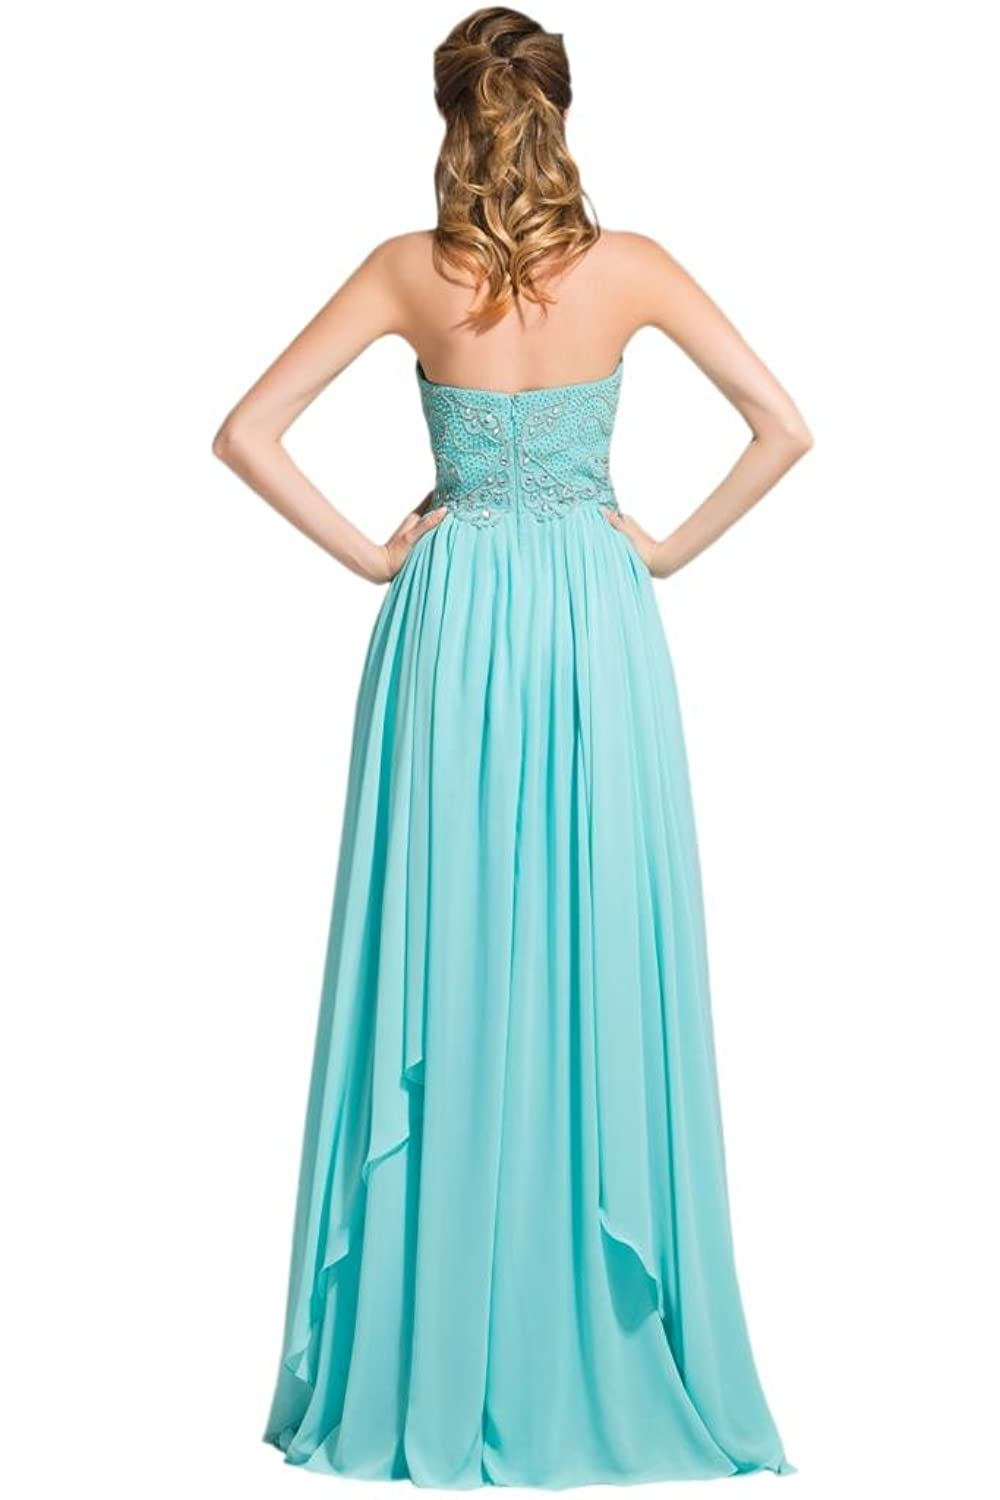 Sunvary Elegant Sweetheart Chiffon Women Pageant Prom Dresses Two Layered Ruffled